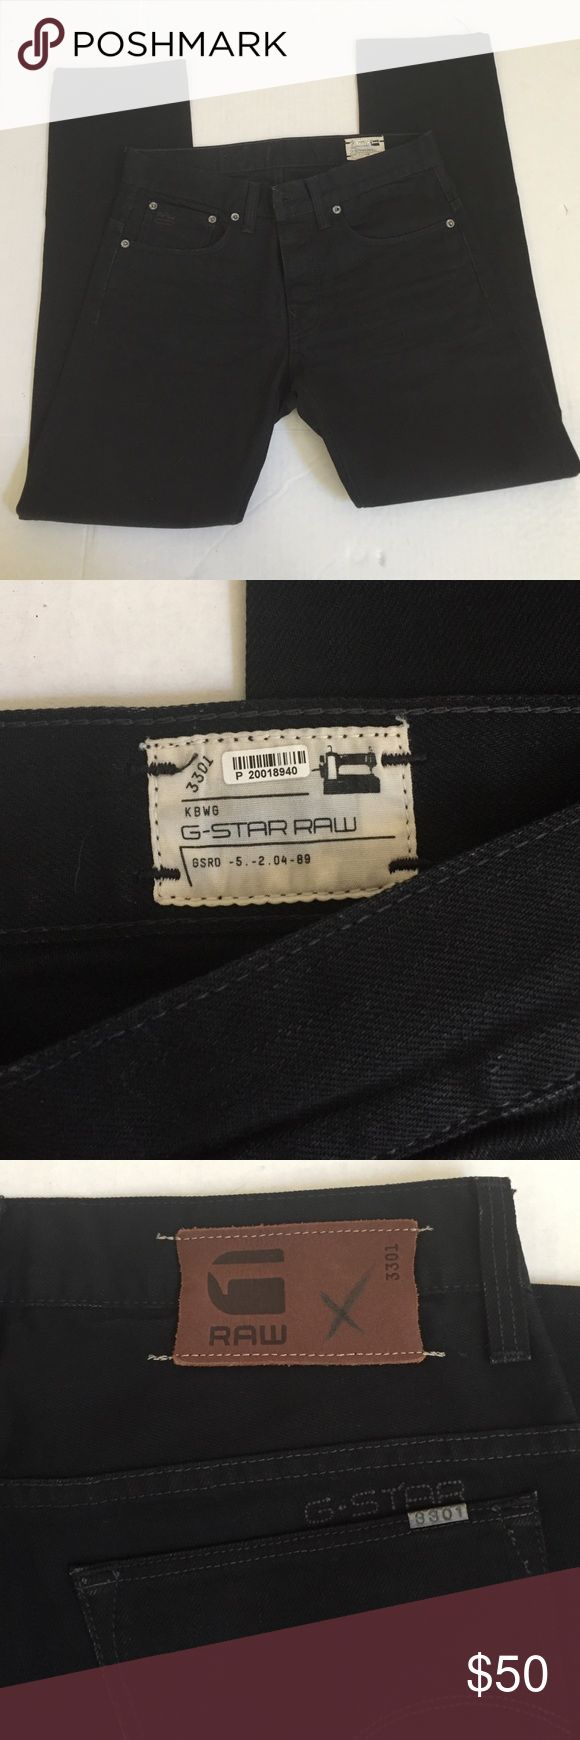 Men's Black G Star Raw jeans Great pair of men's black jeans by G Star Raw! Never worn! Button fly, waist 30 inseam 29 inches G-Star Jeans Slim Straight